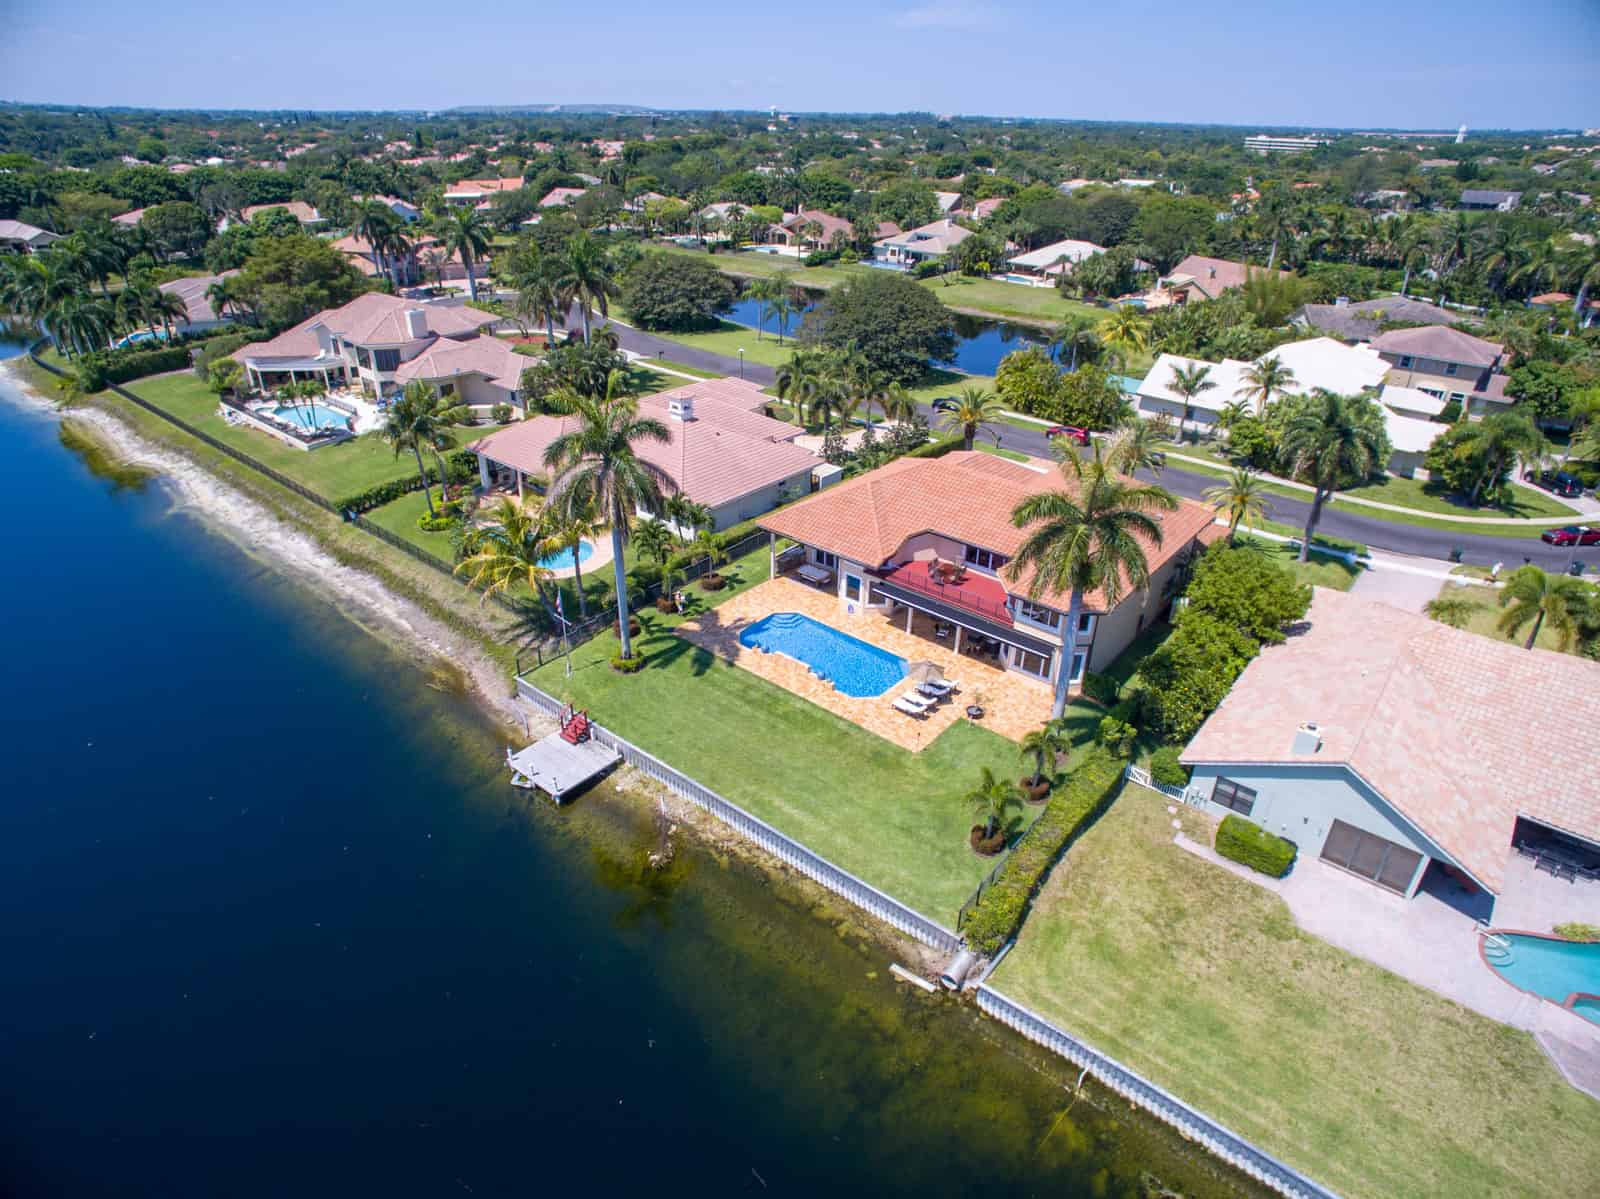 home in Florida next to lake with swimming pool in backyard and palm trees